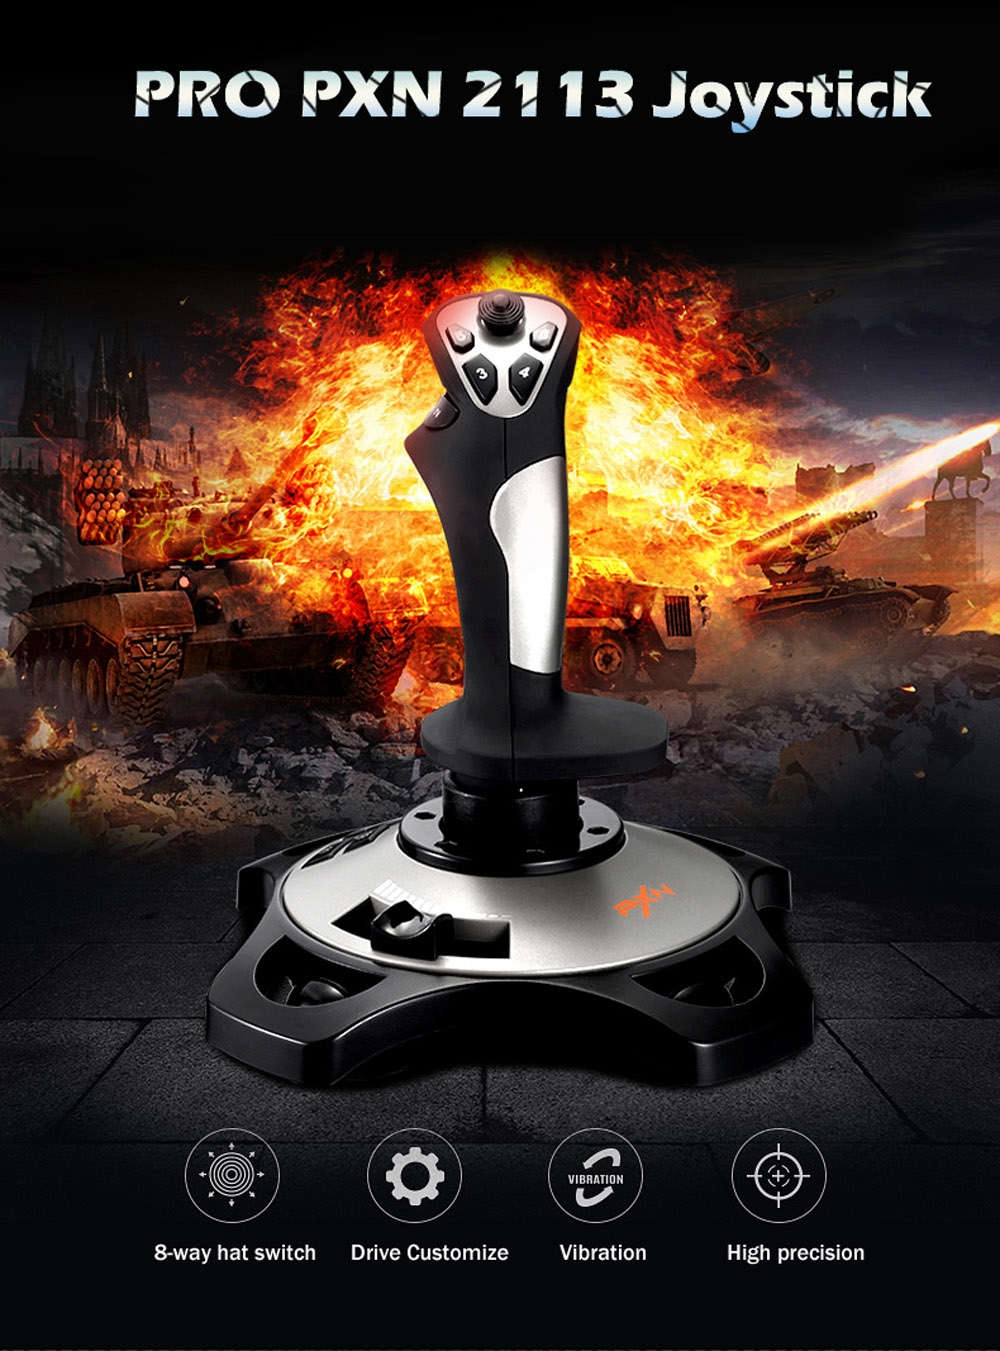 PXN PRO 2113 Wired 4 Axles Flying Game Joystick Simulator Controller